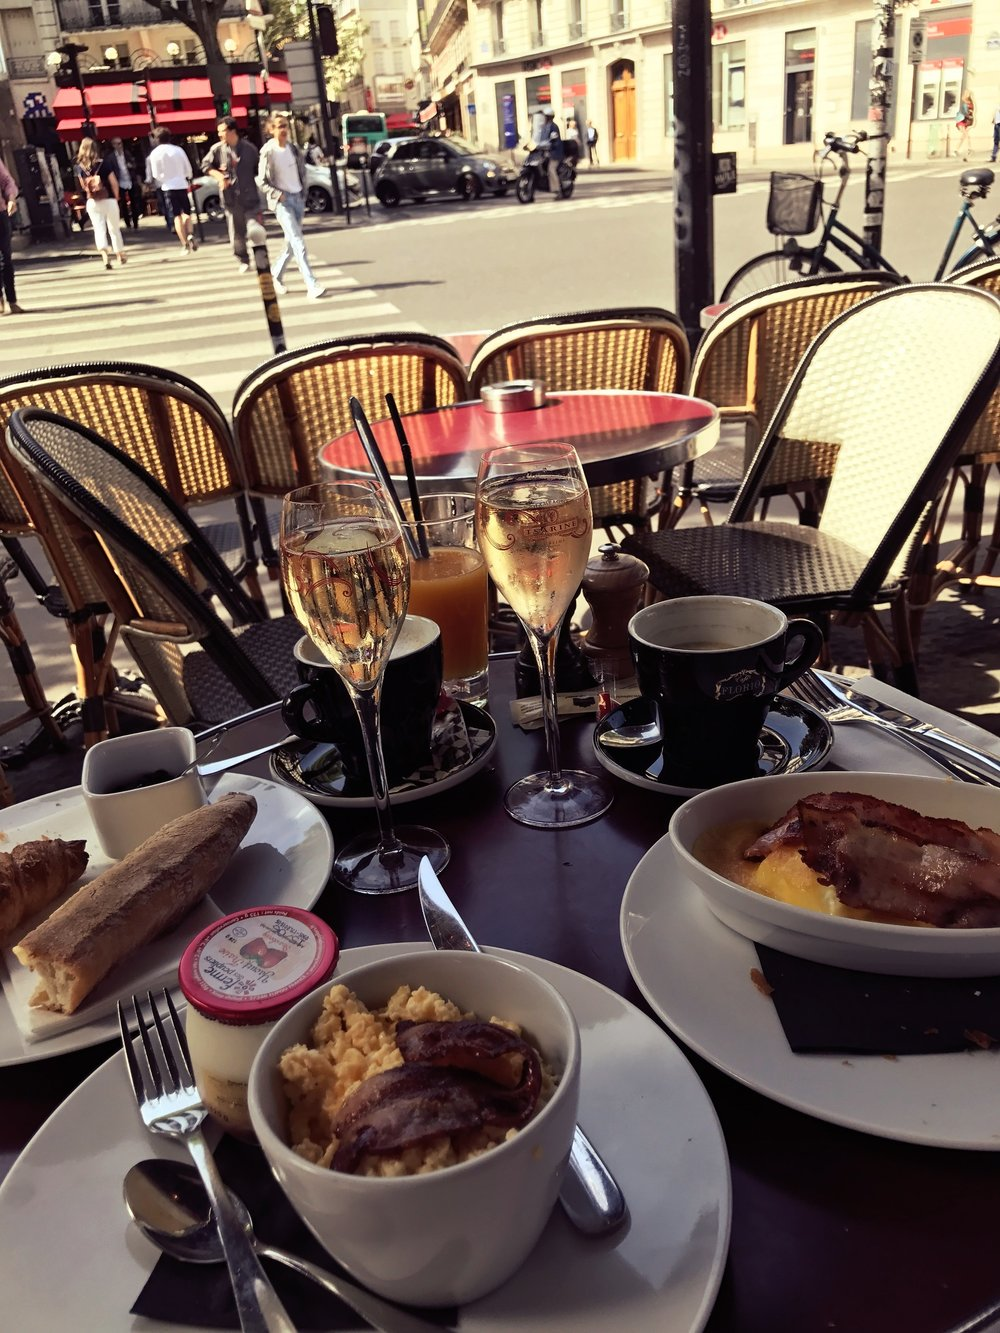 What could possibly make brunch, the best meal ever, even better? Paris of course.